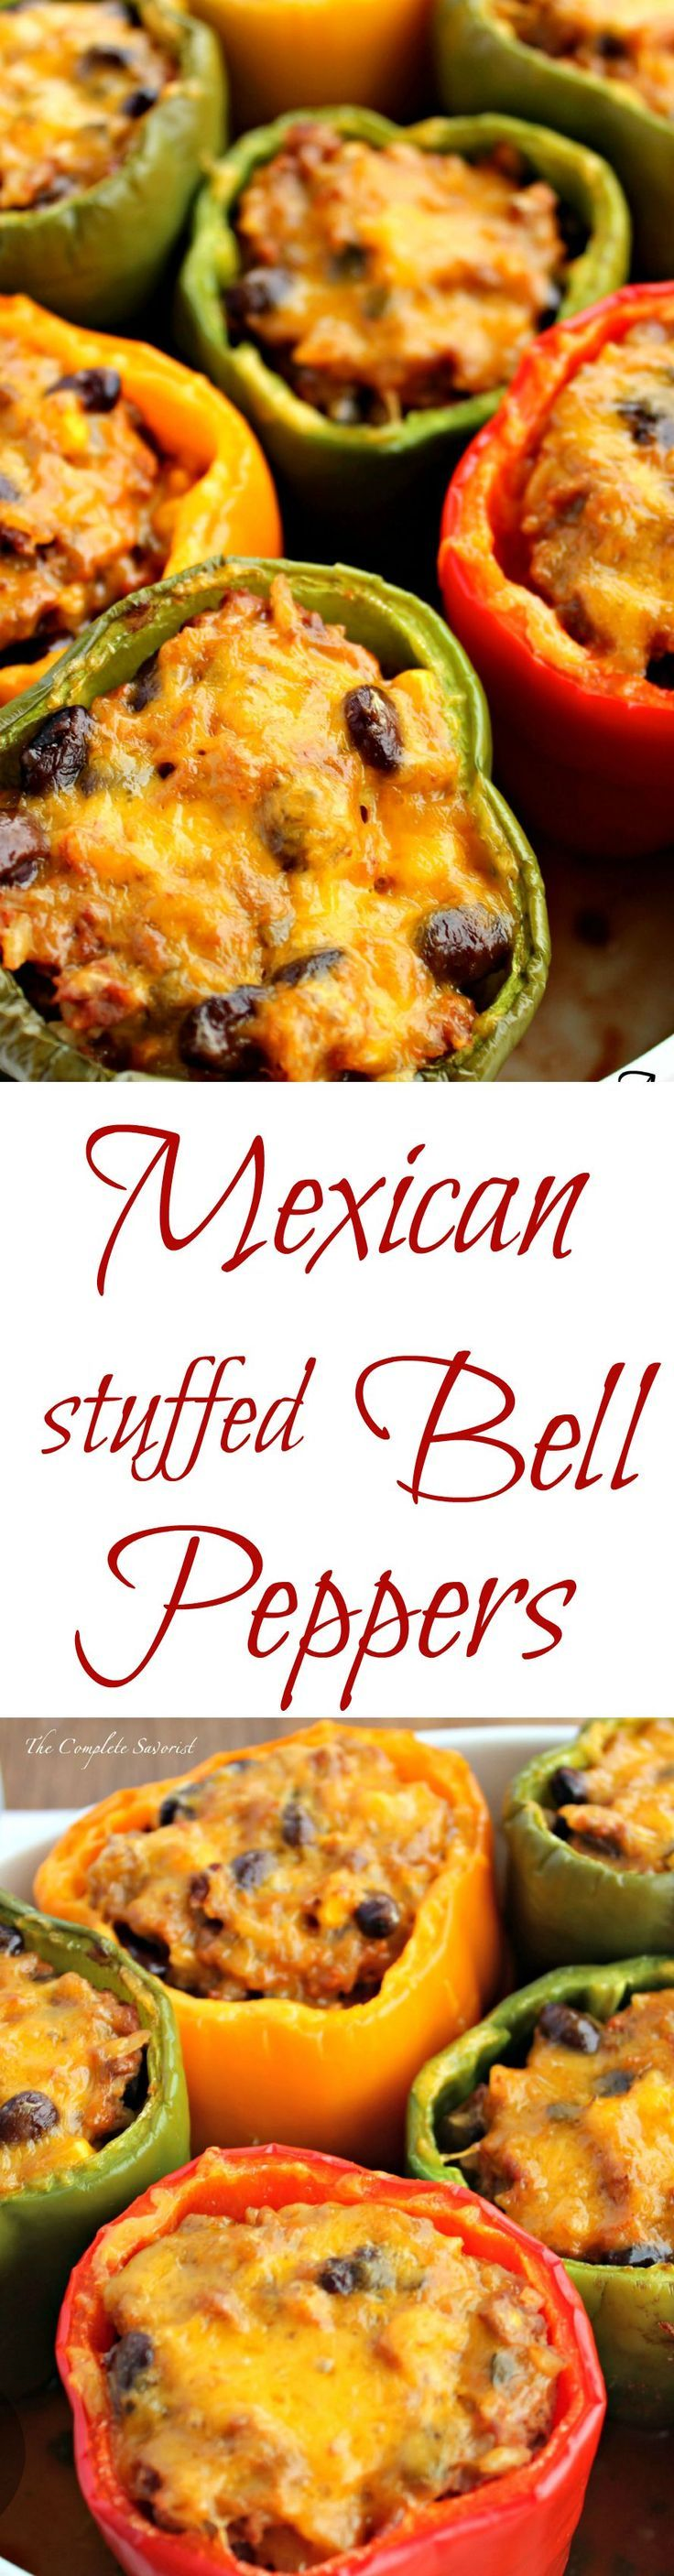 Mexican Stuffed Bell Peppers ~ Bell peppers stuffed with rice, black beans, corn, taco meat, and cheese. ~ The Complete Savorist